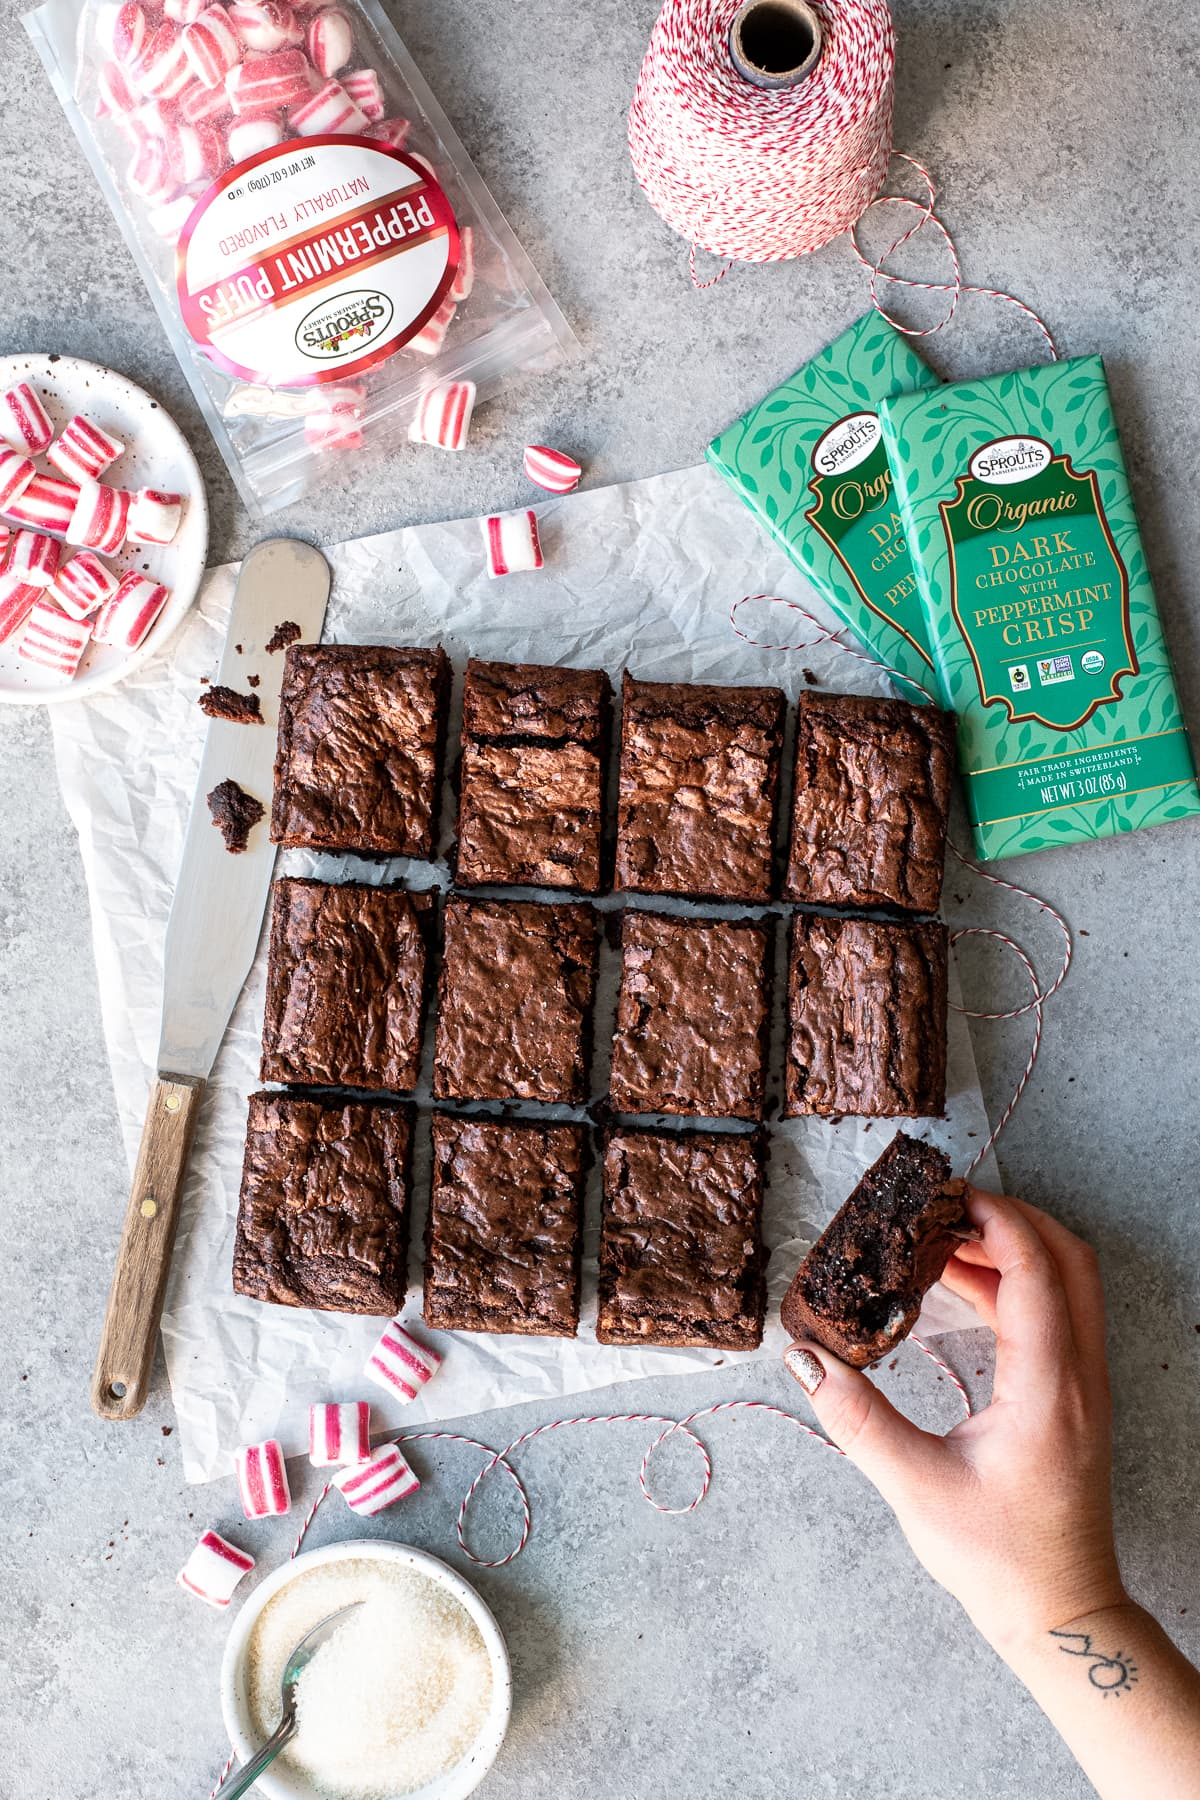 Overhead shot of sliced brownies on a sheet of parchment paper, surrounded by peppermint chocolate and candies. A hand is grabbing one of the brownies.